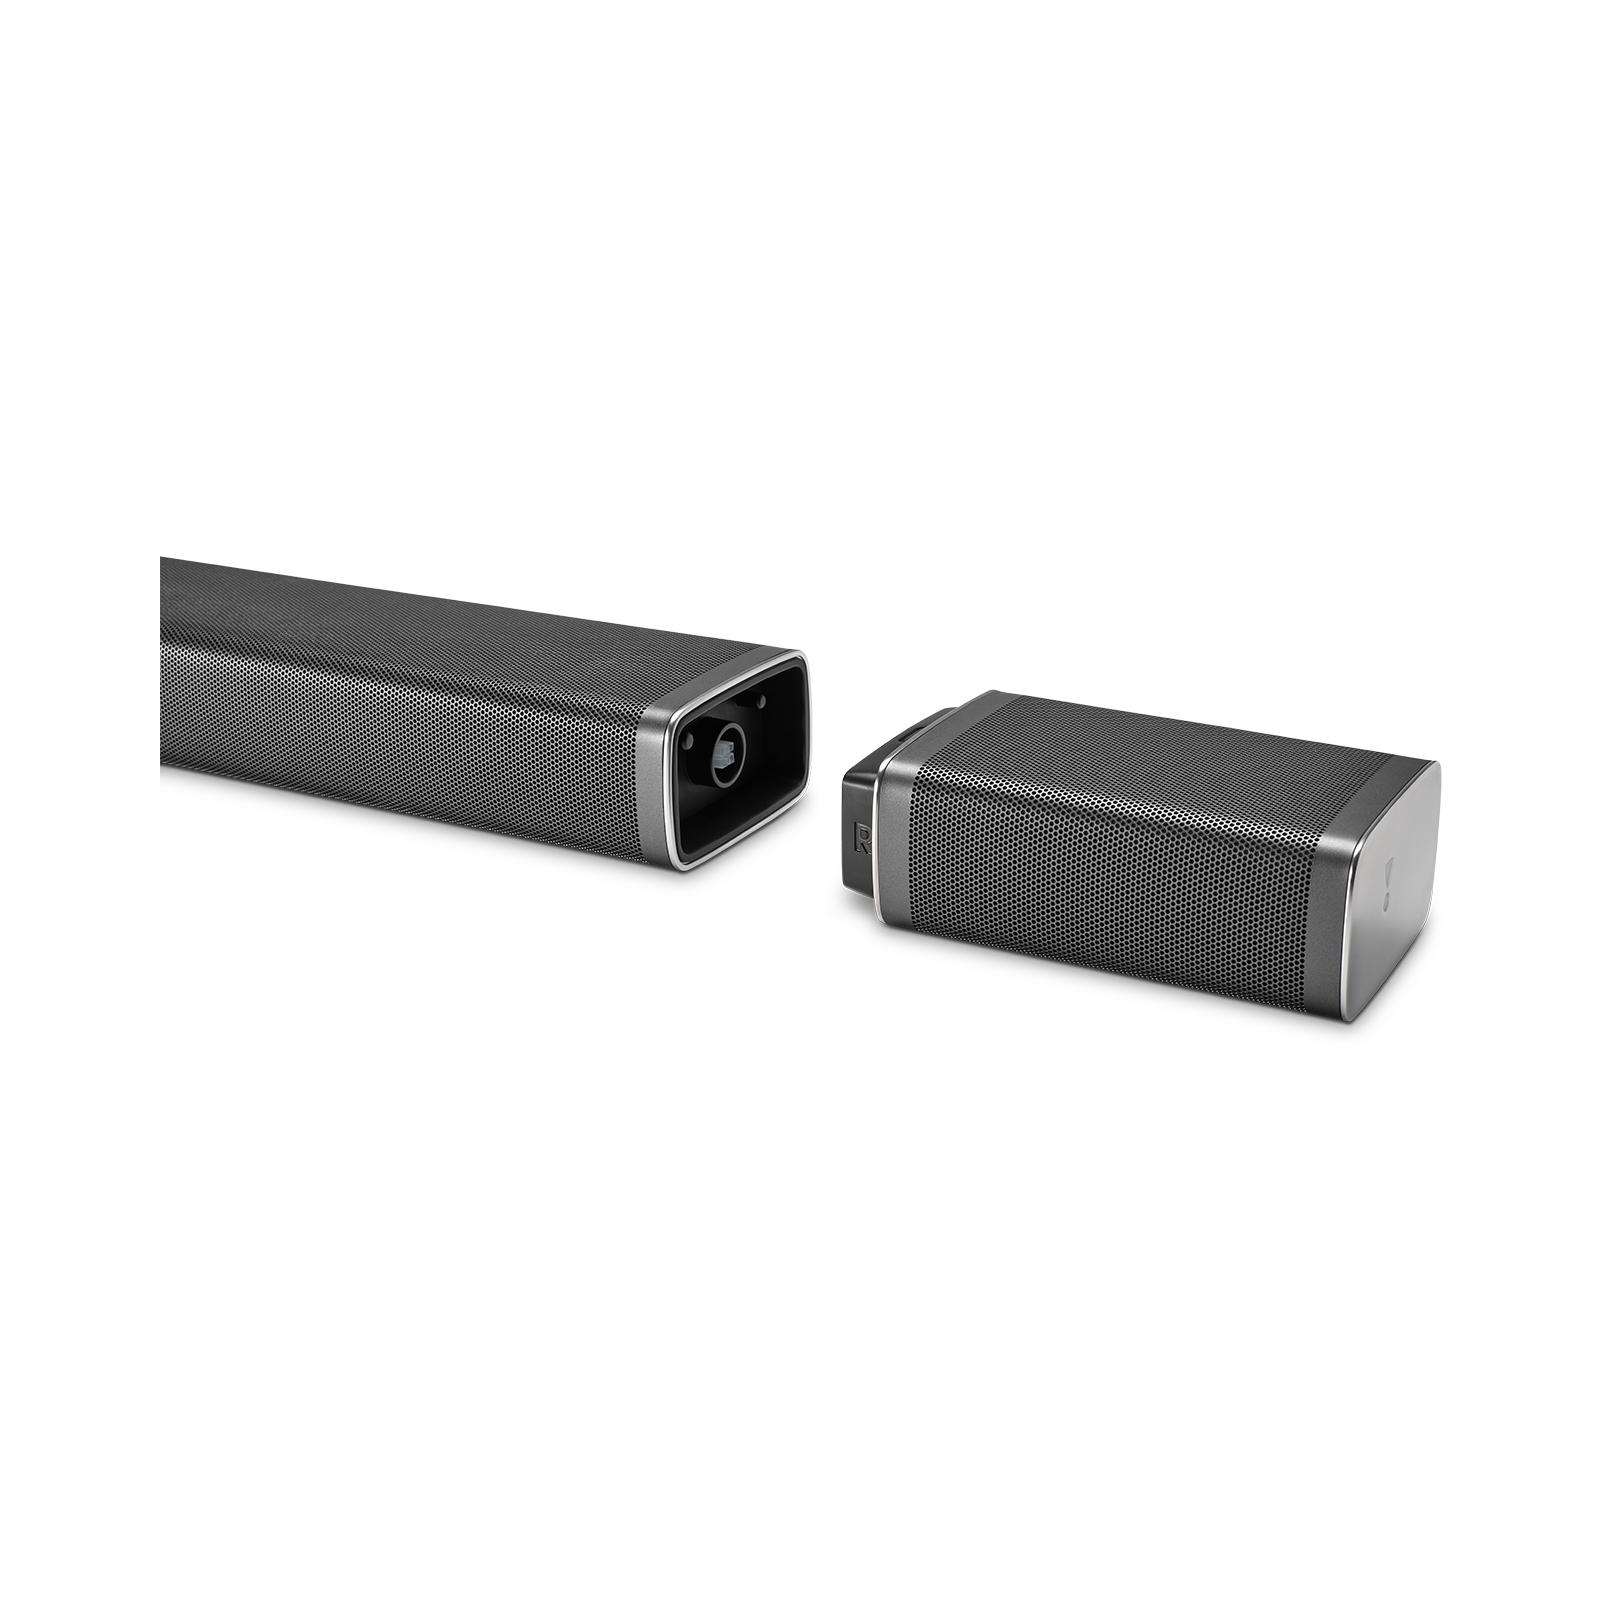 JBL Bar 5.1 - Black - 5.1-Channel 4K Ultra HD Soundbar with True Wireless Surround Speakers - Detailshot 1